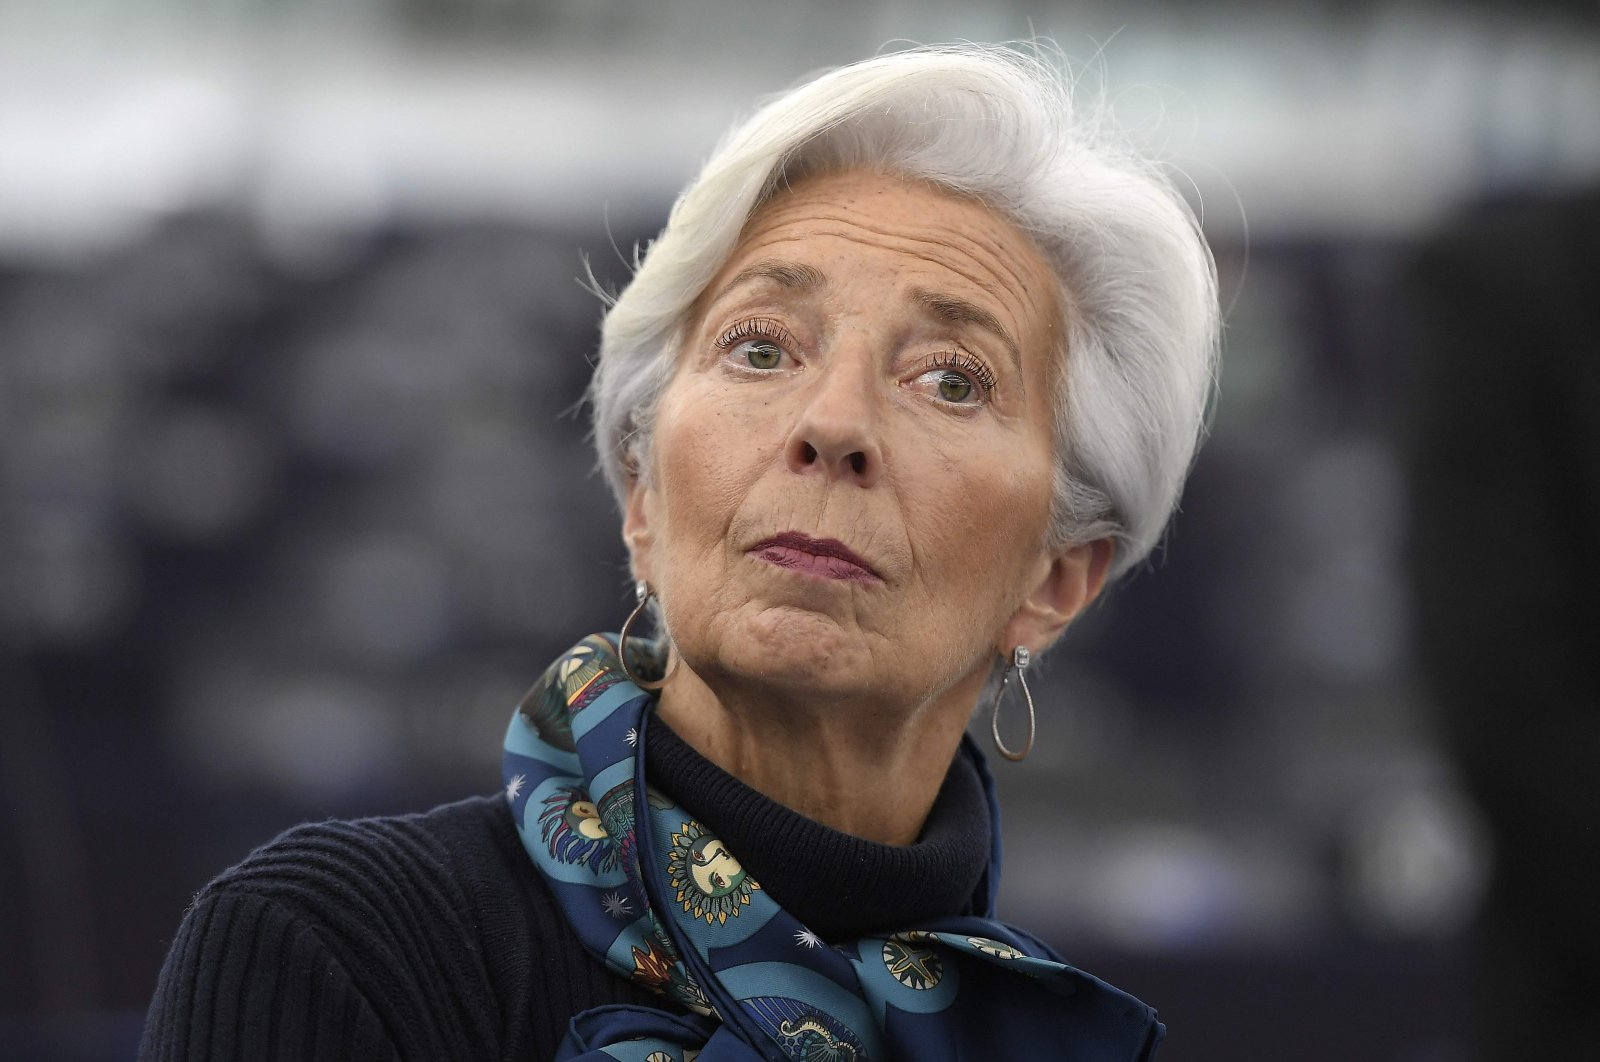 President of the European Central Bank (ECB) Christine Lagarde attends a debate on the eurozone's economic governance and ECB activities at the European Parliament in Strasbourg, eastern France, Feb. 11, 2020. (AFP Photo)